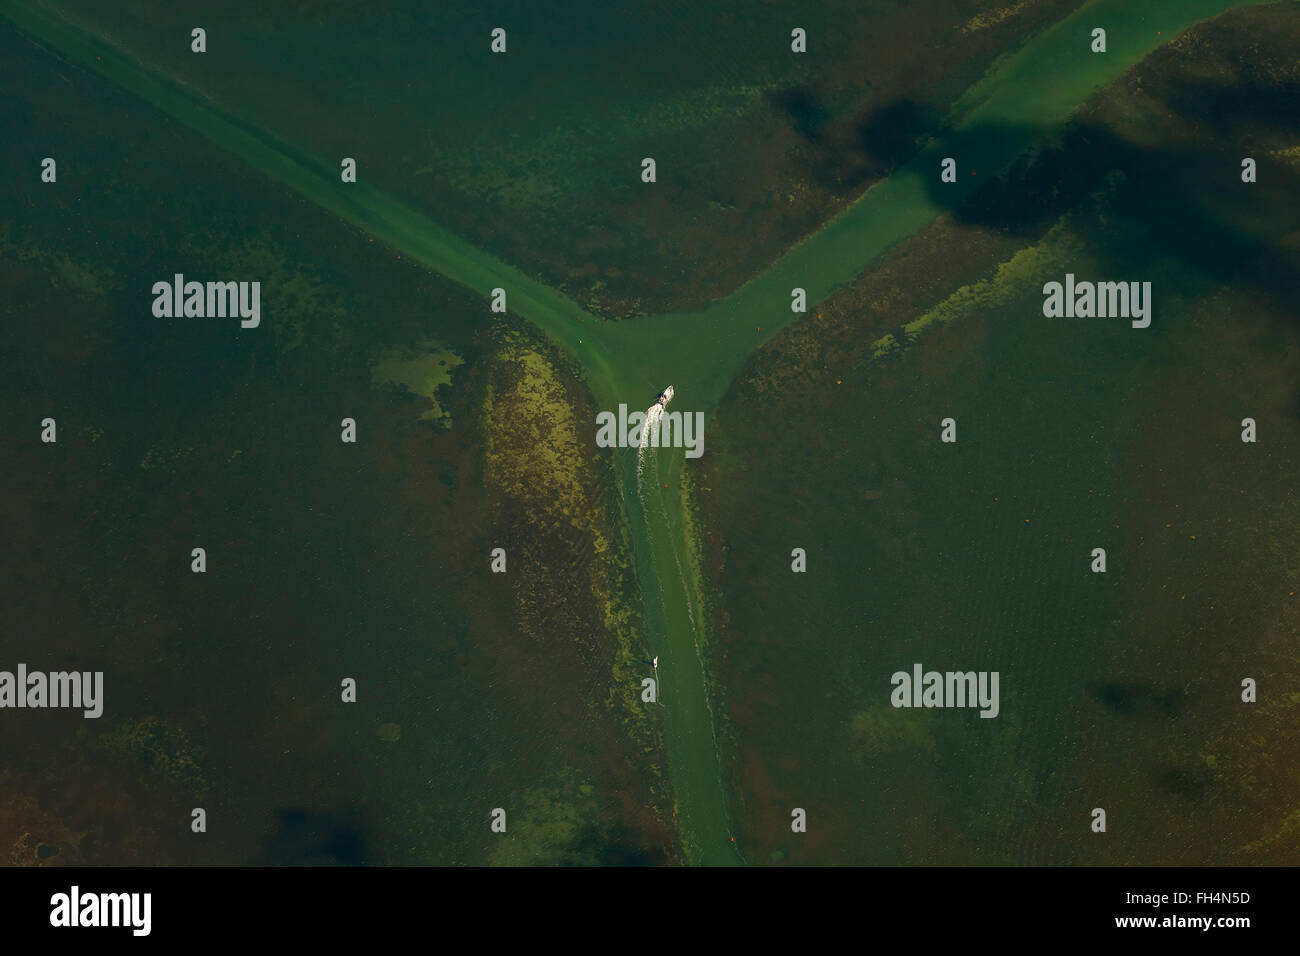 Aerial view, fairway branch Schaprode Hiddensee by ferry, Hiddensee, Baltic Sea island, Mecklenburg-Vorpommern, - Stock Image